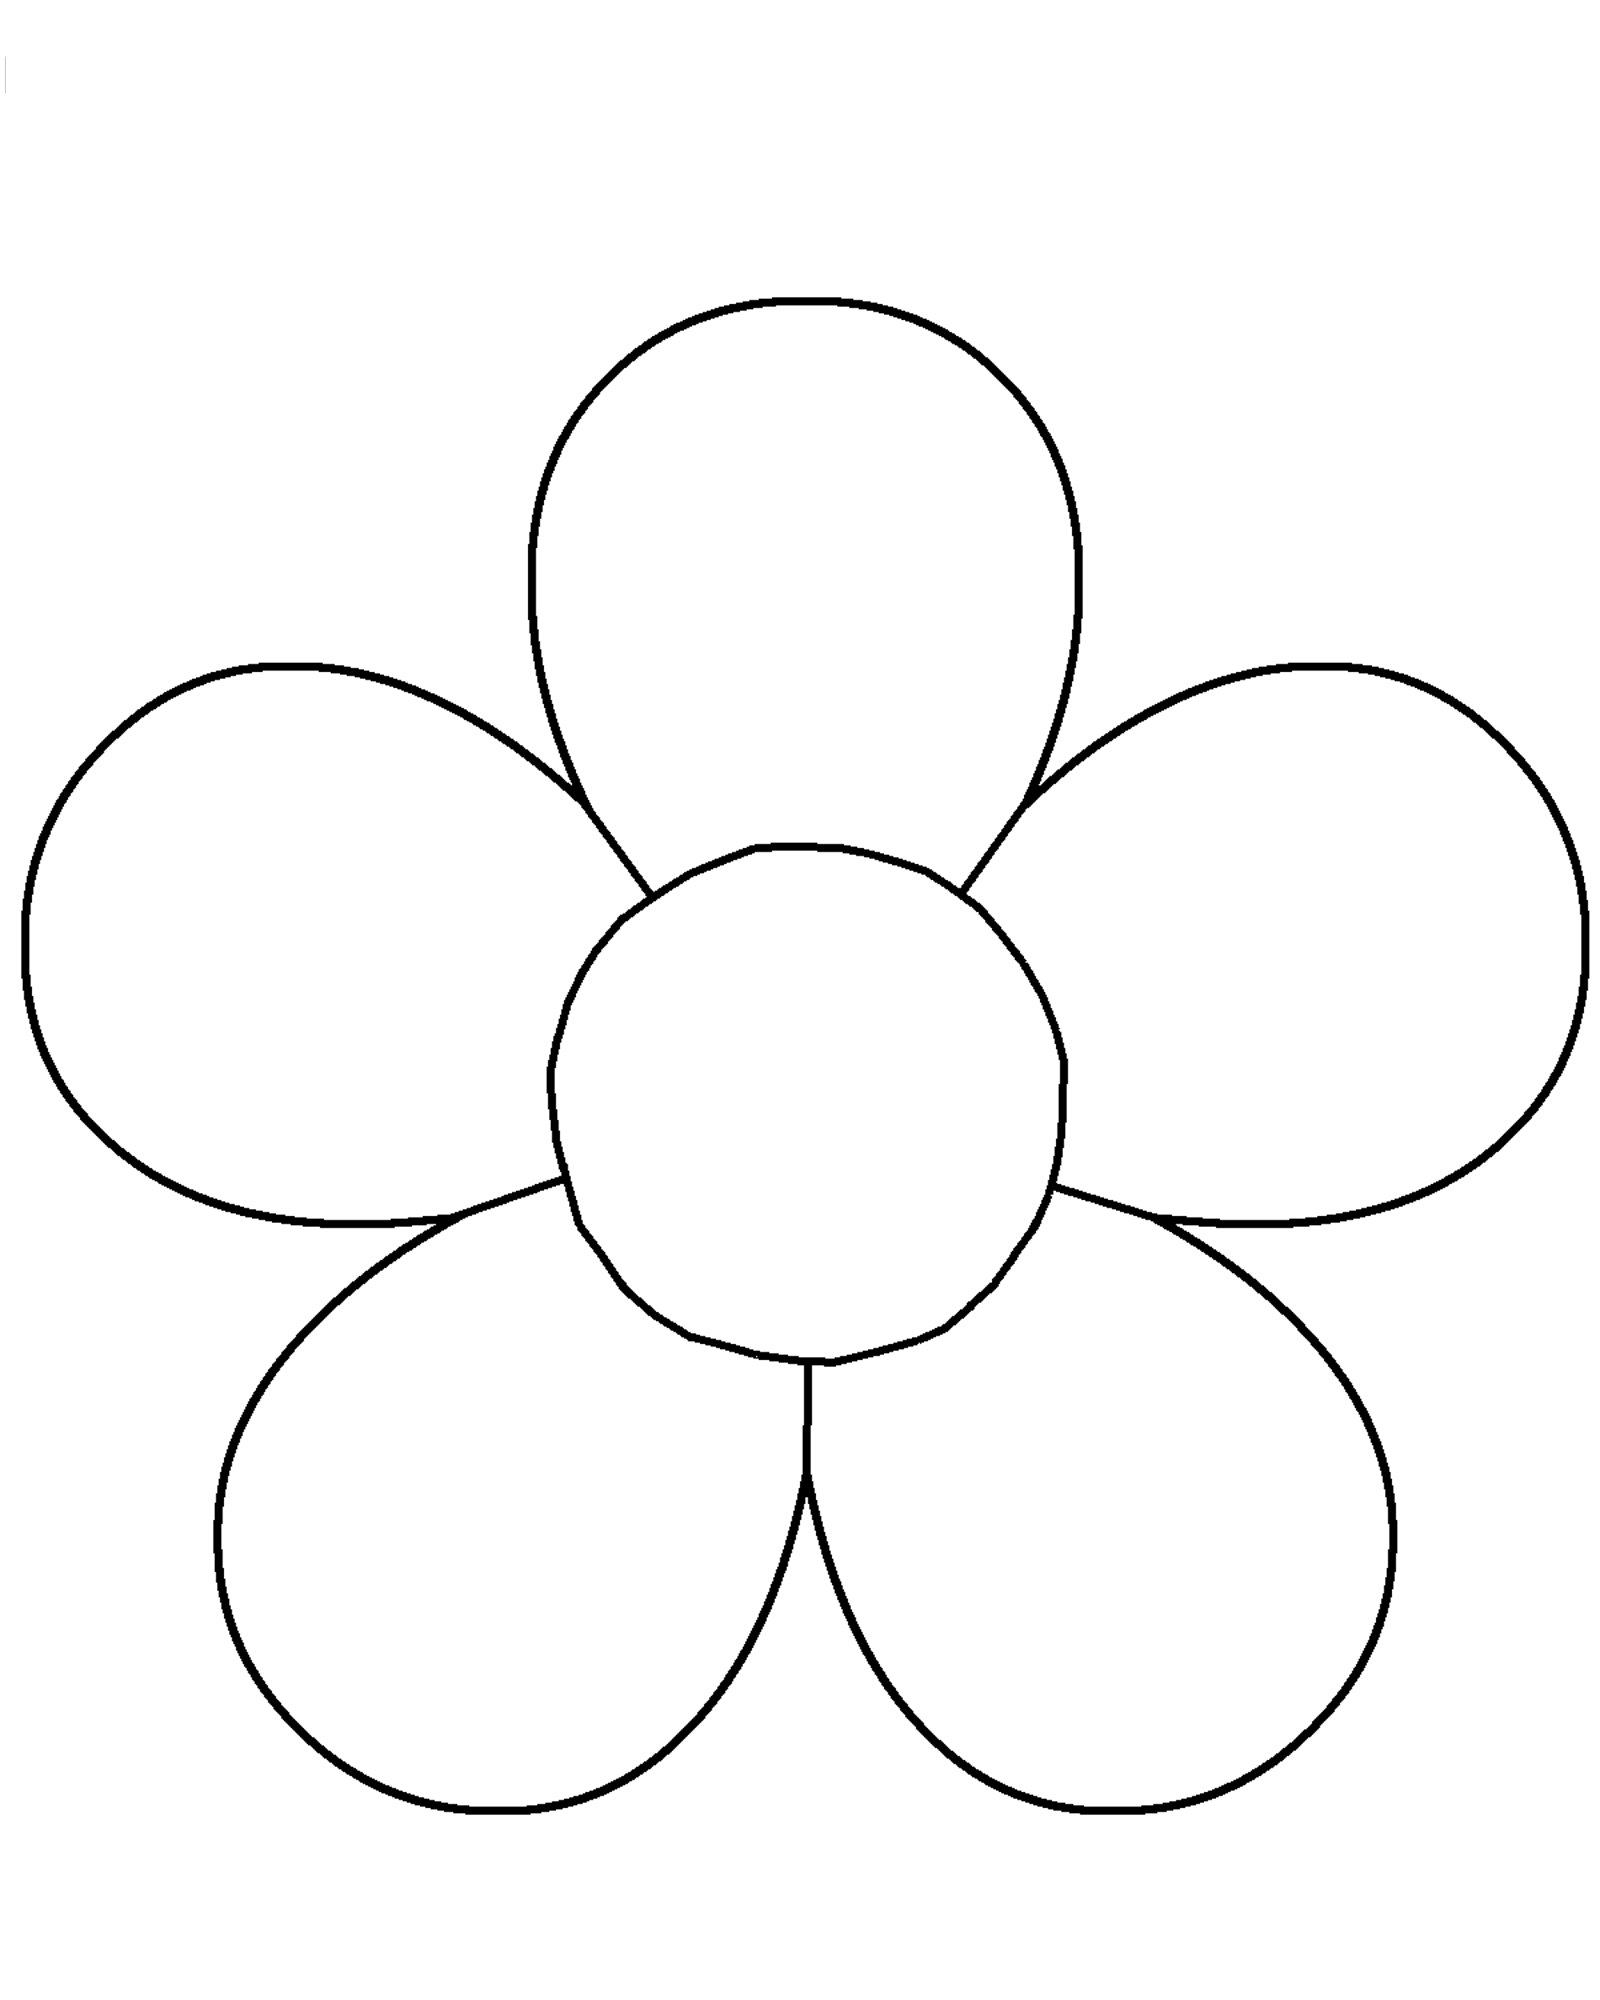 flower templates for coloring 176 best images about askartelu kesä kukka on pinterest templates coloring flower for